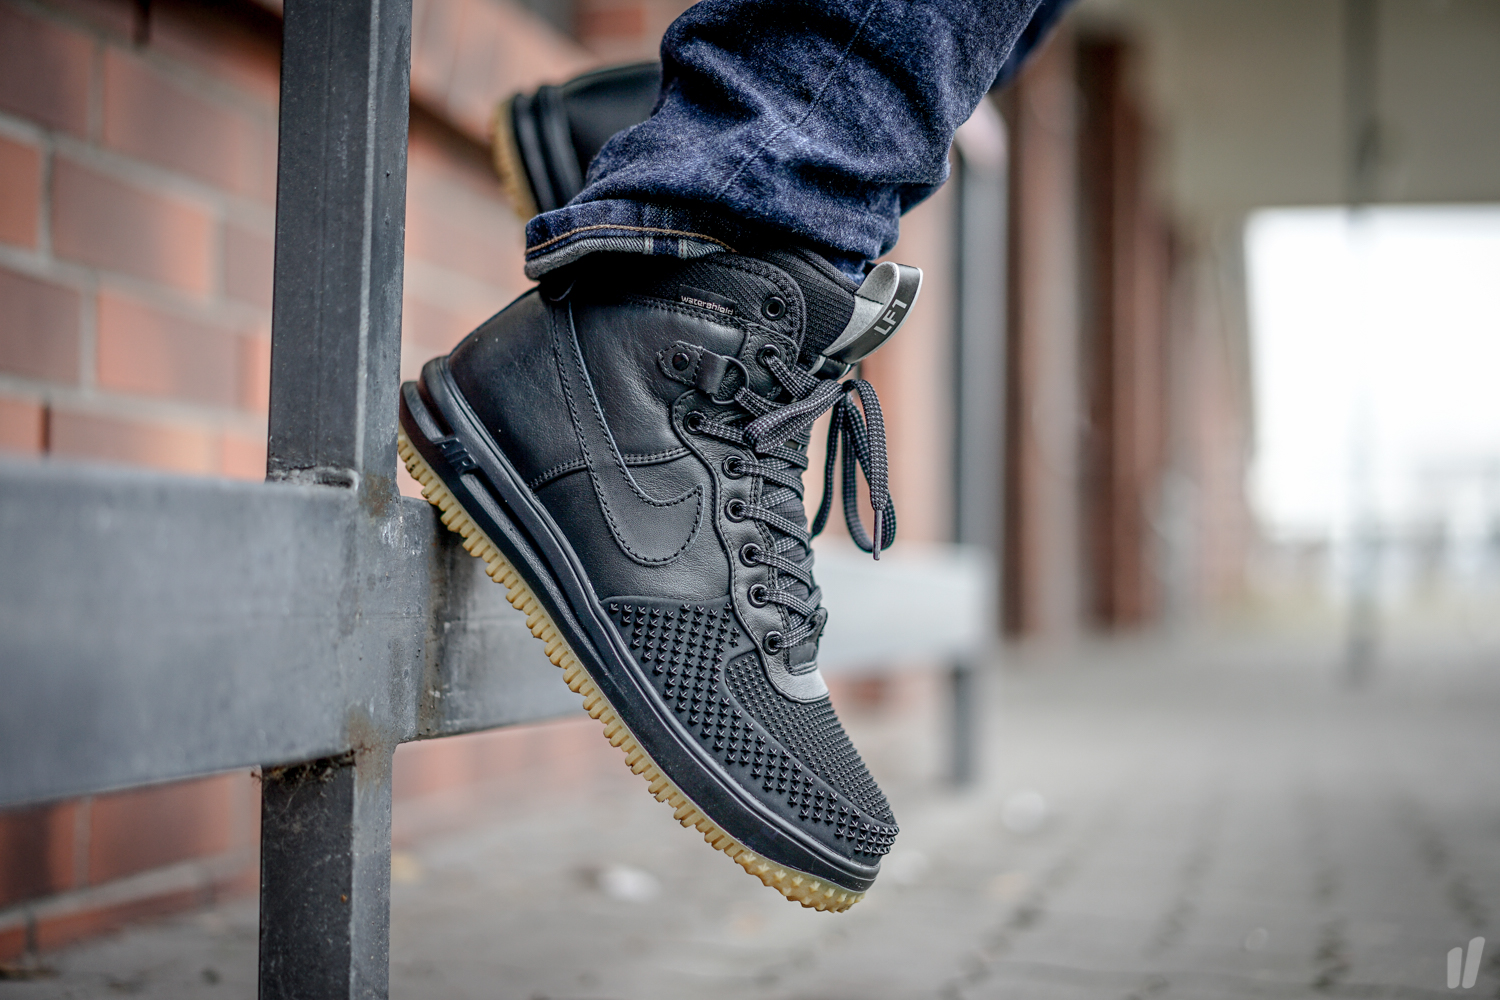 e565813feed8 Nike Lunar Force 1 Duckboot Black Metallic Silver - Air 23 - Air Jordan  Release Dates